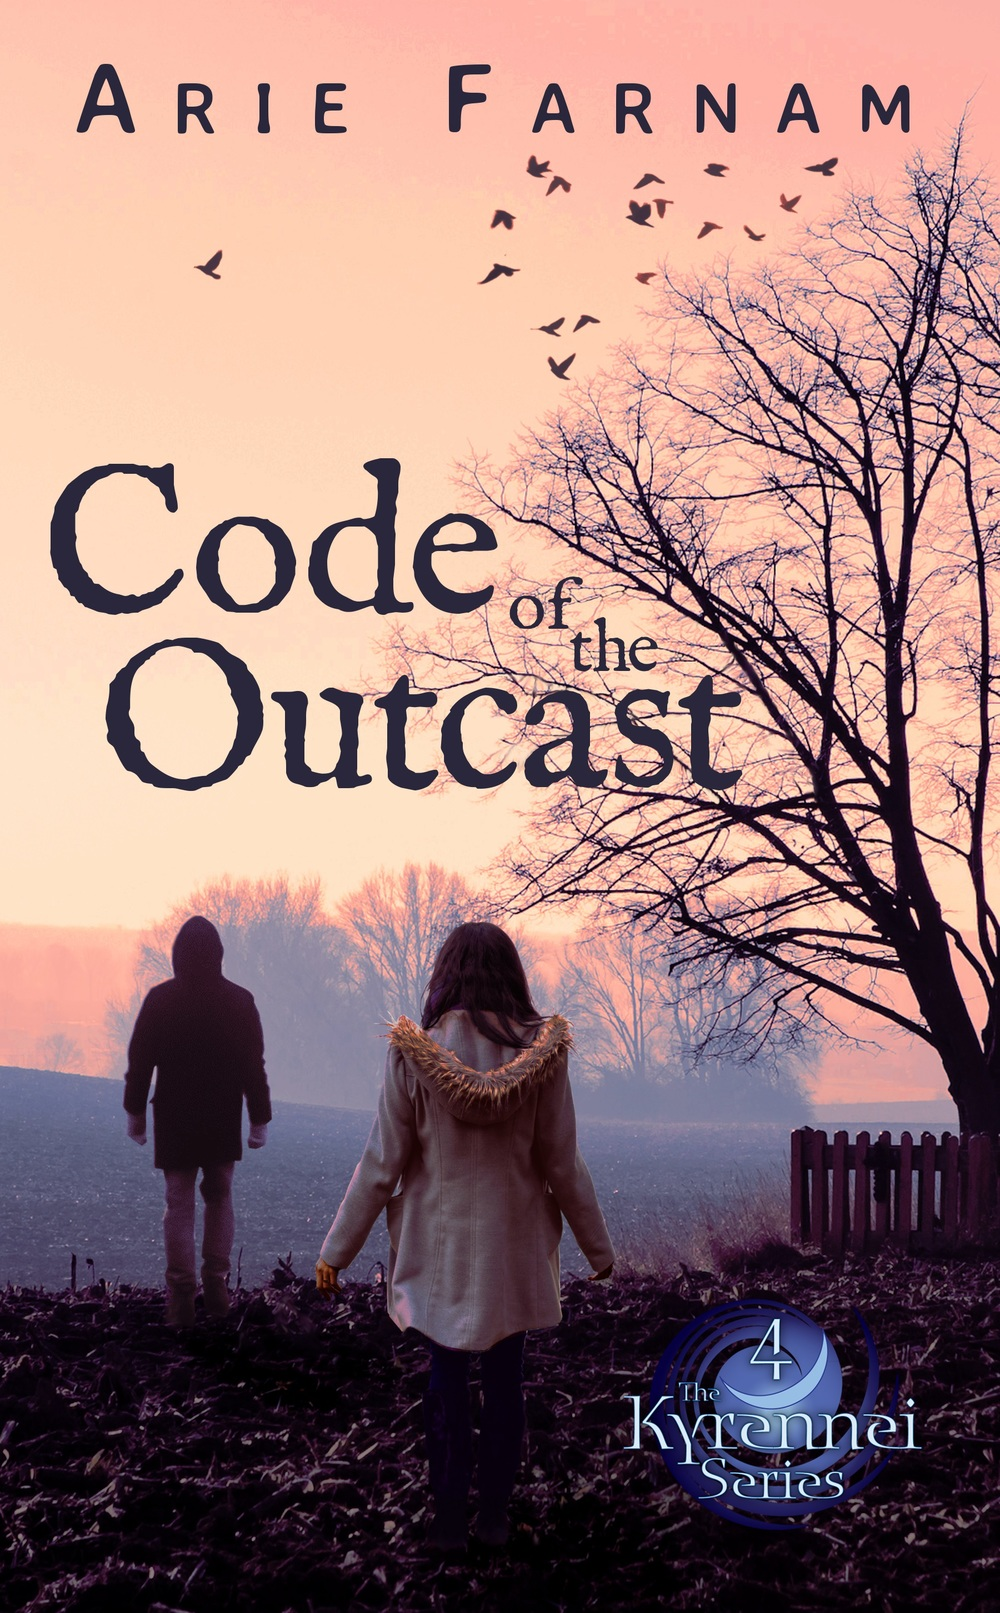 New books by the hearth arie farnam code of the outcast book 4 of the kyrennei series is out fandeluxe Gallery